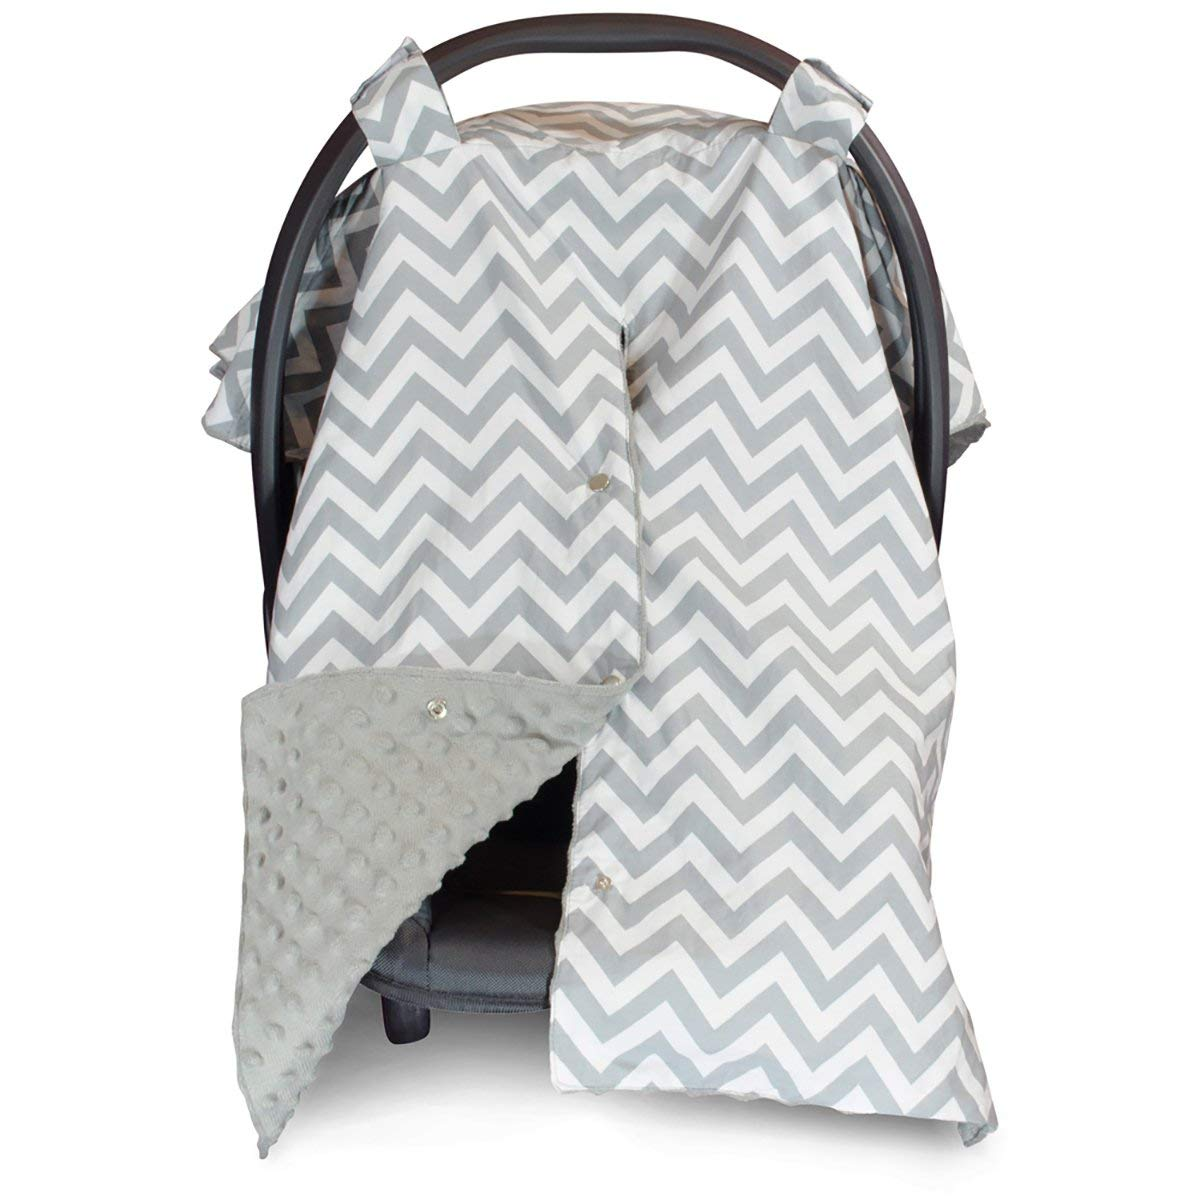 It is very popular Kids N' Such Peekaboo Baby Clearance SALE! Limited time! Canopy Seat Cover Car